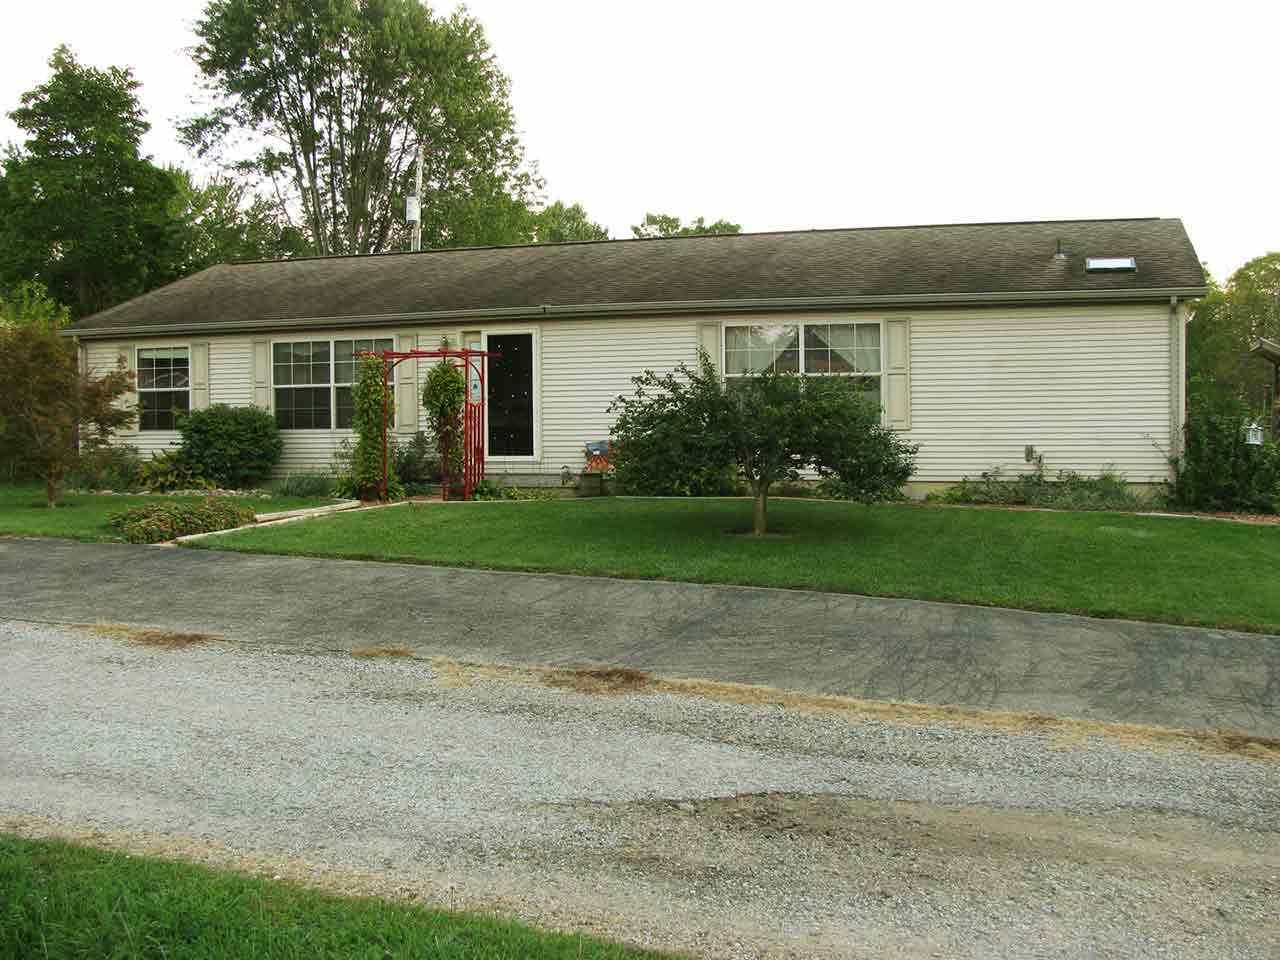 4145 W 145 S, Angola, IN 46703